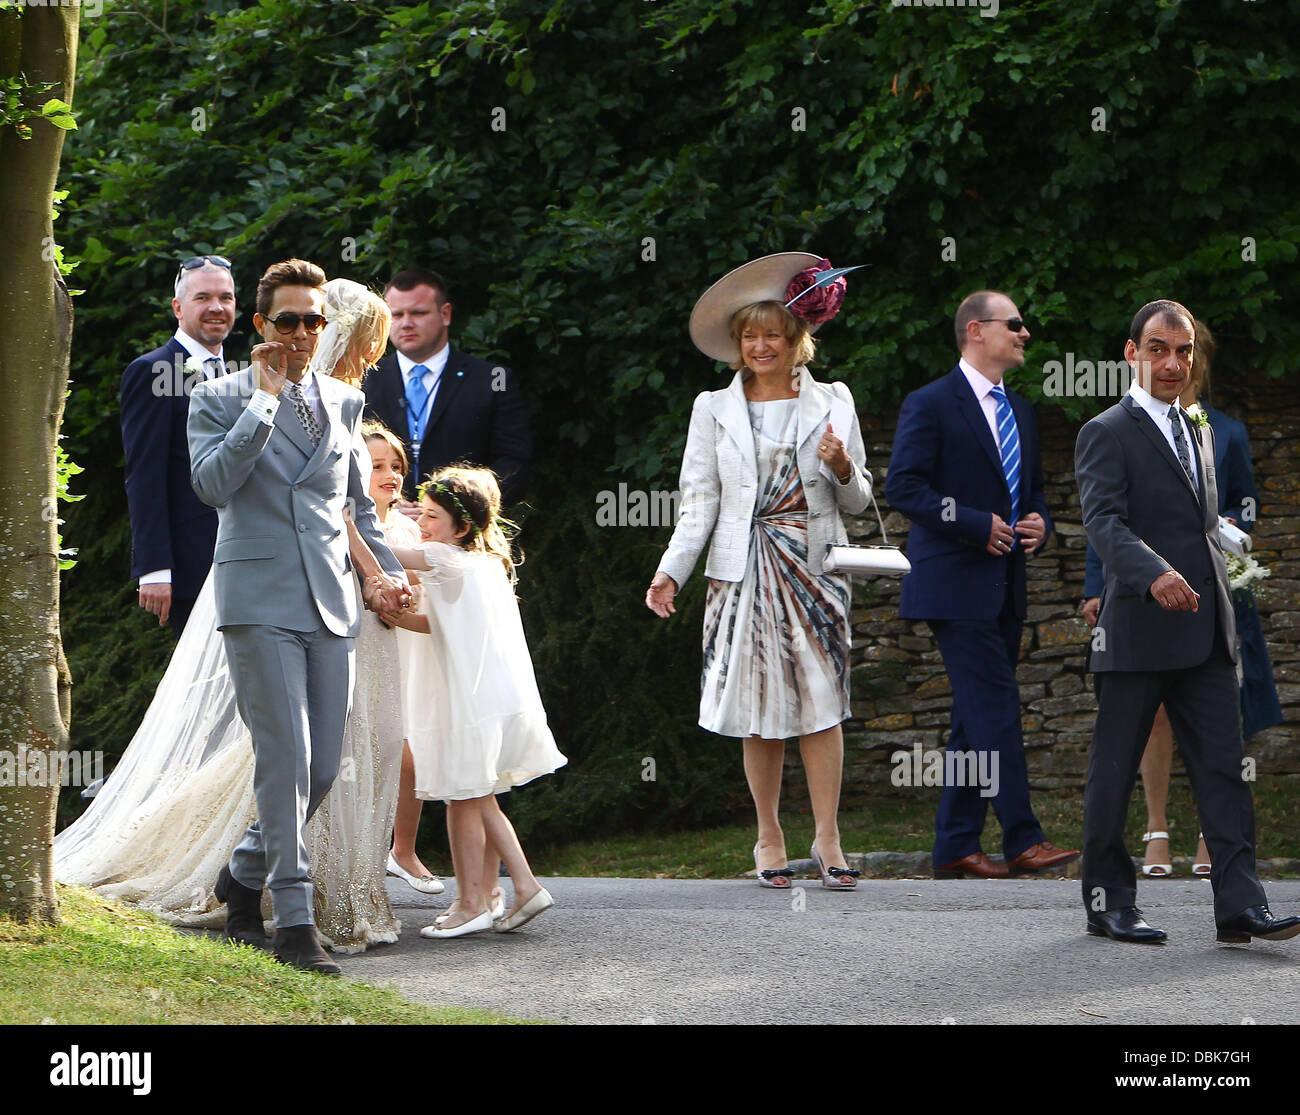 The marriage ceremony of Kate Moss was held in the small old church of St. Margaret 07/02/2011 69